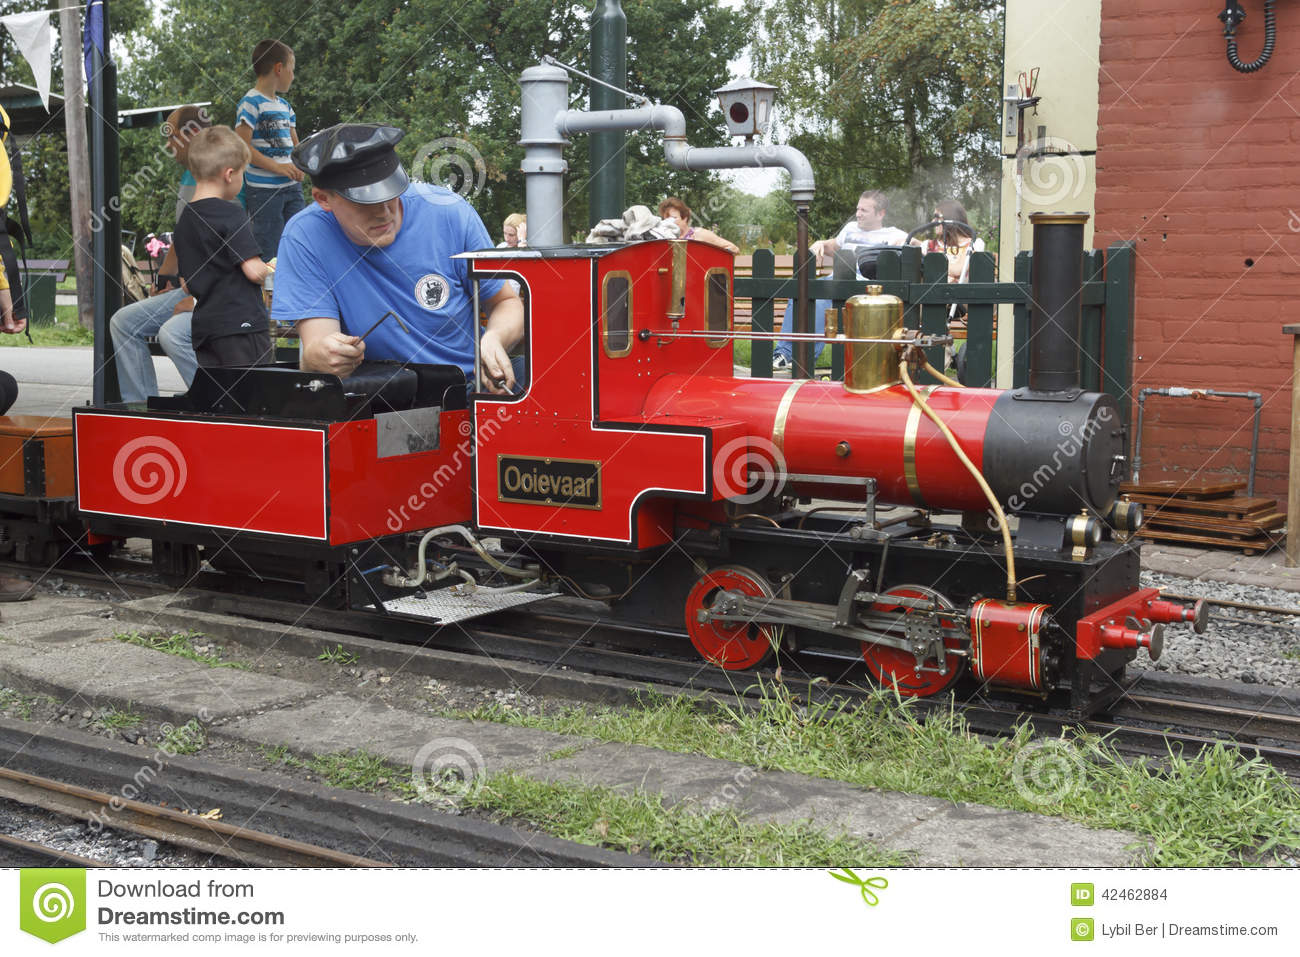 Stock Images Vintage Toy Car Image25529724 besides 261115093930 together with Bus China further Editorial Stock Image Miniature Steam Train Driver Preparing Lo otive Imminent Departure Image42462884 furthermore 131482395882. on old metal toy car